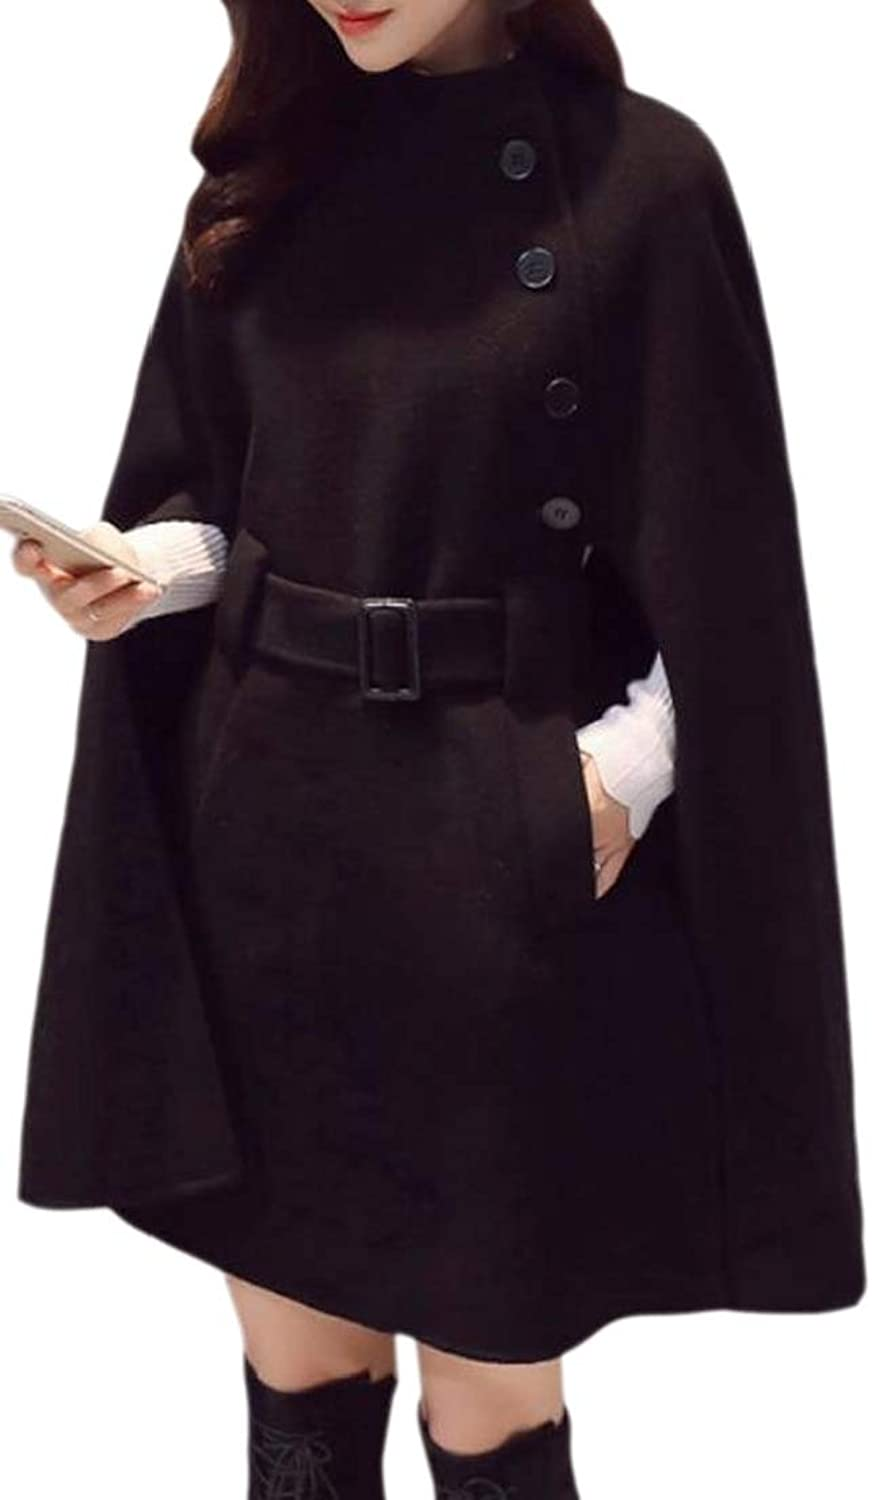 Generic Womens Fall Winter Wool Blend Belted Stylish Cape Outwear Pea Coat